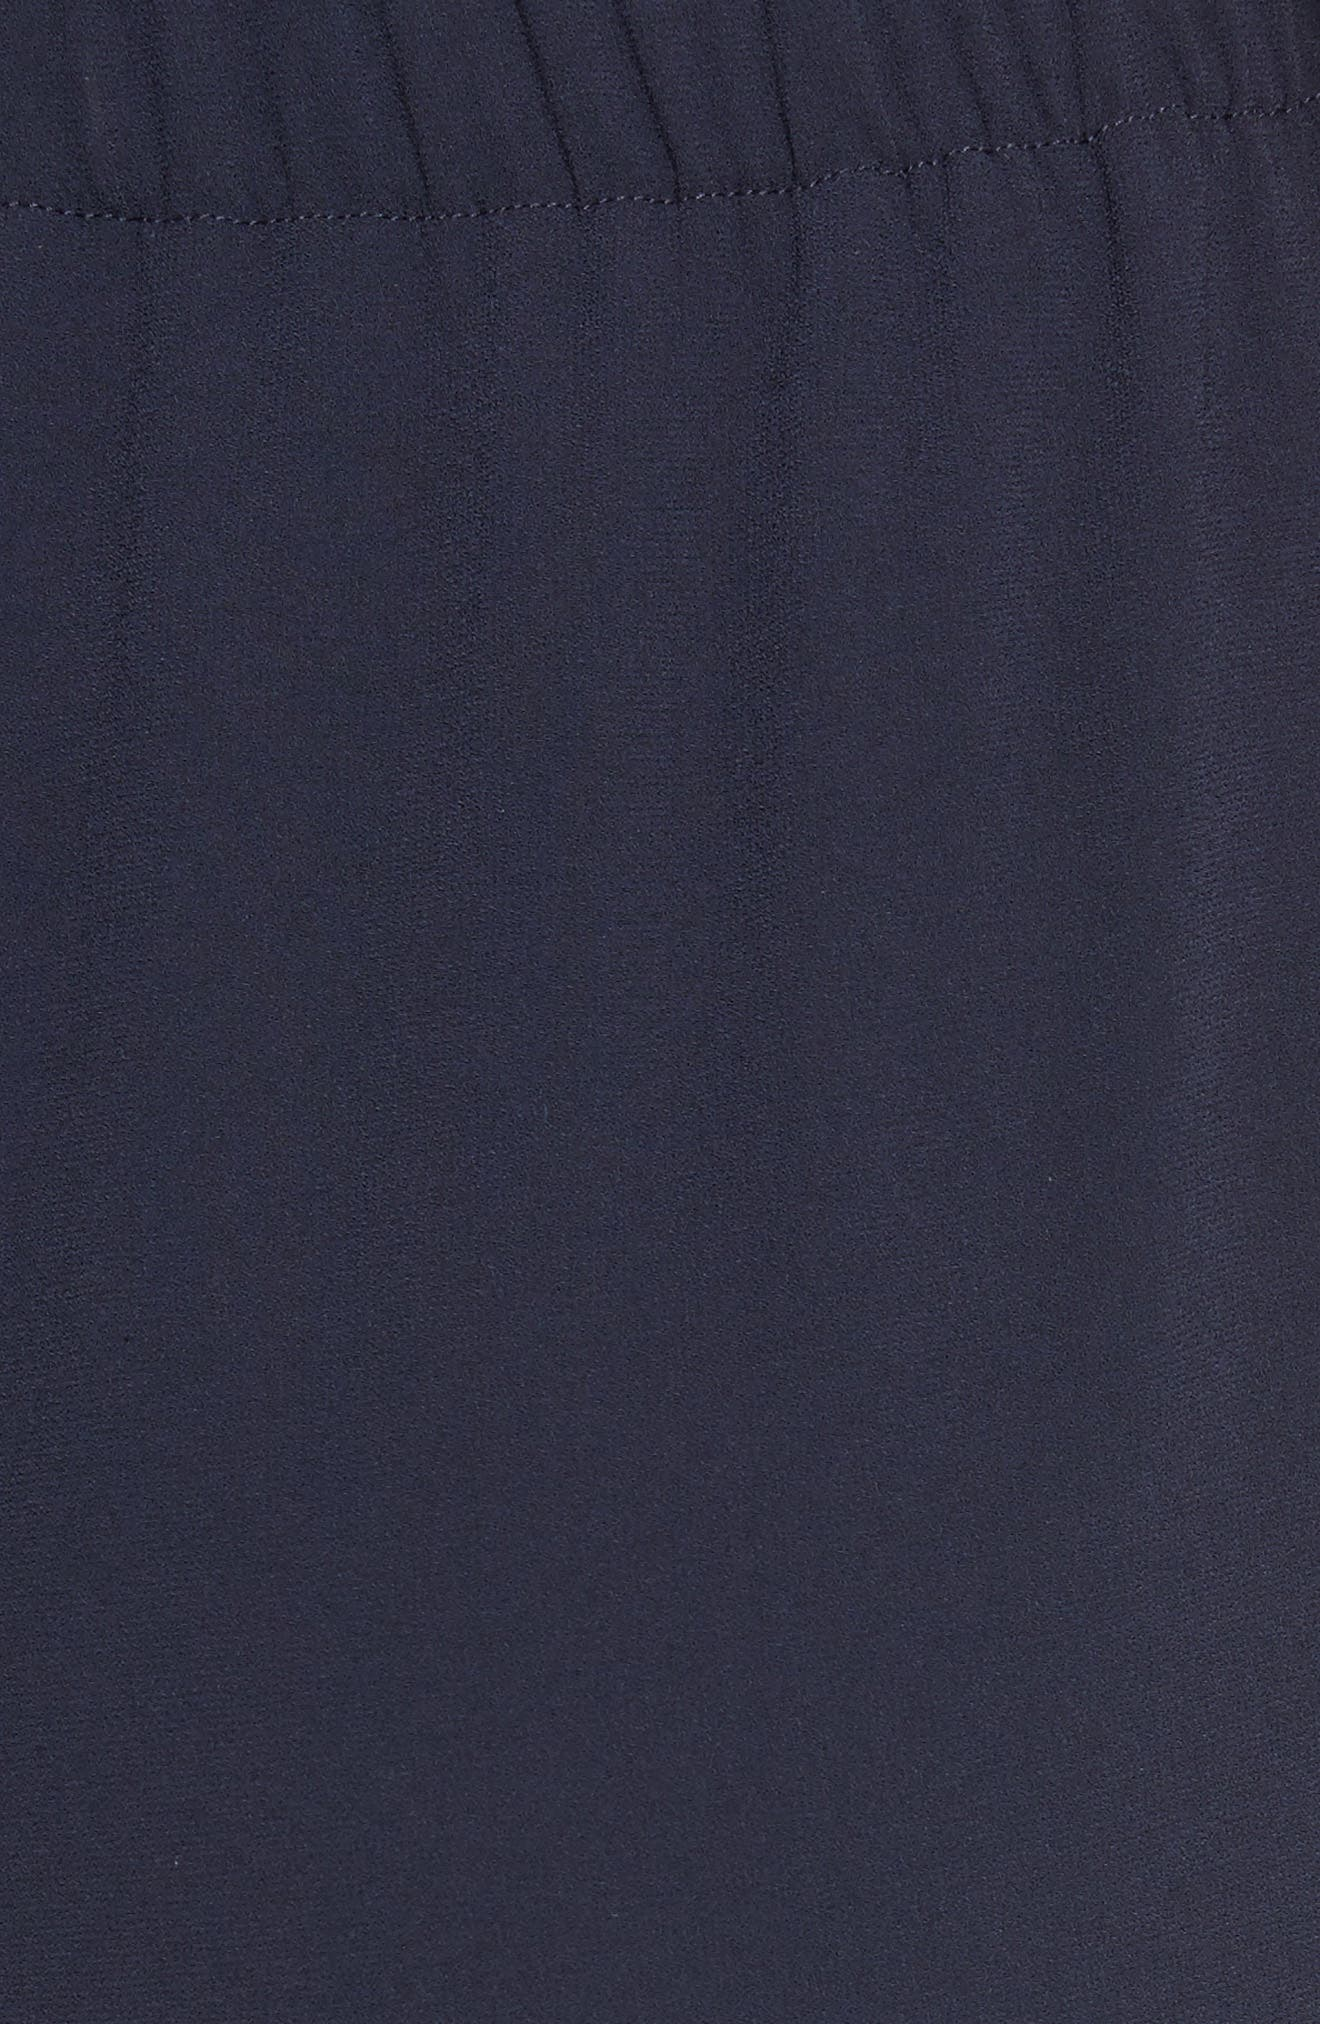 Satin Back Crepe Pants,                             Alternate thumbnail 5, color,                             Navy